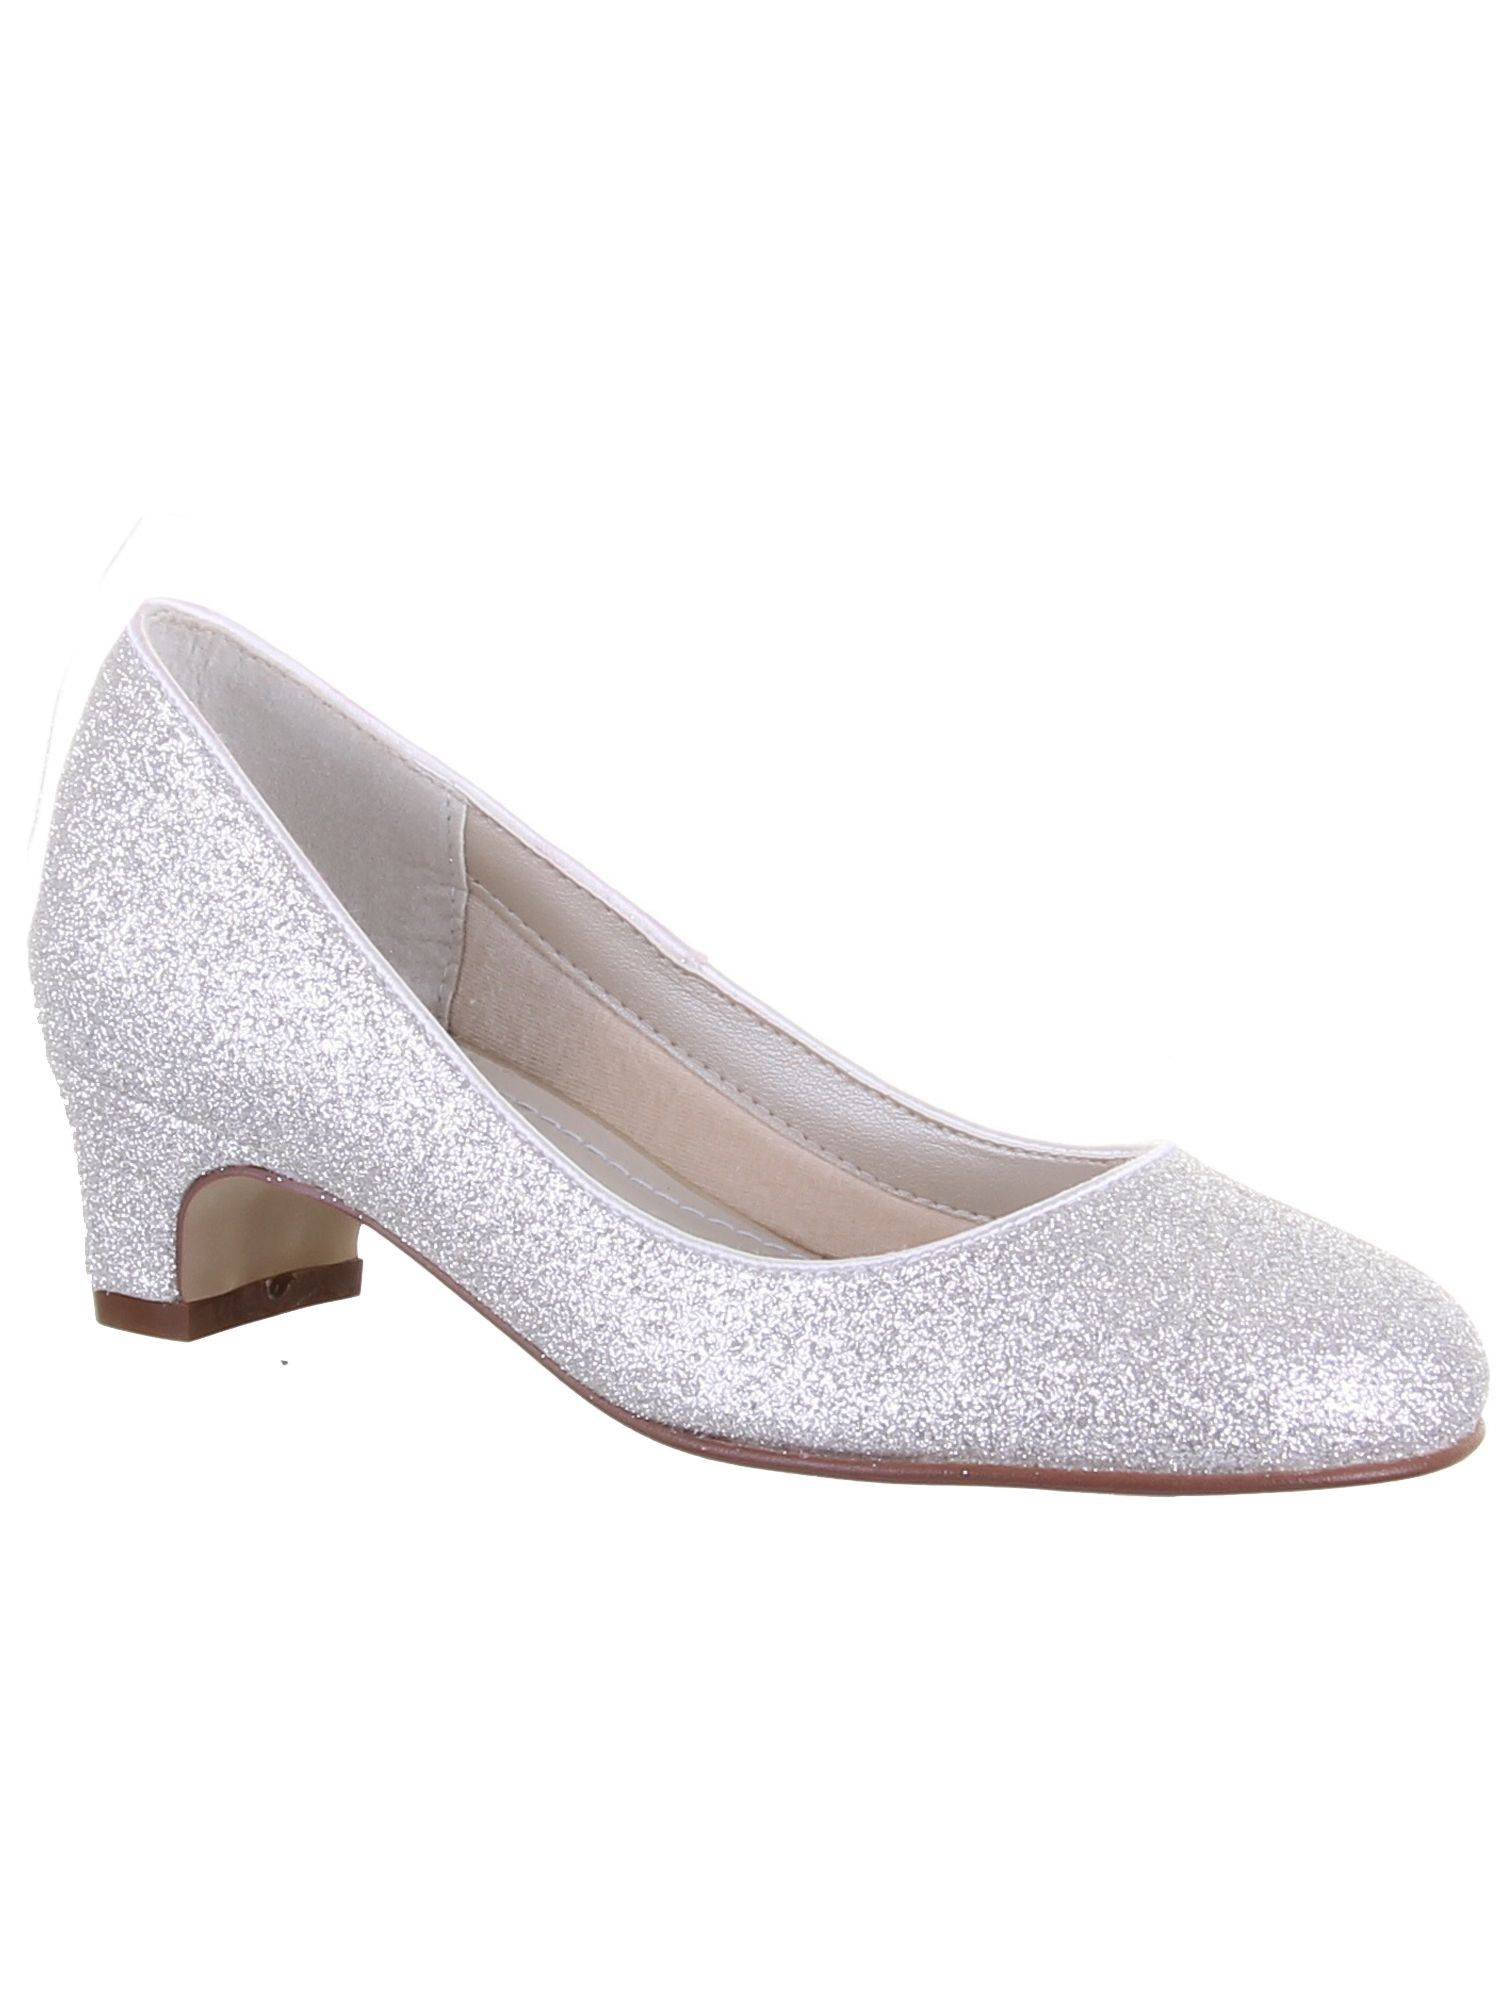 Rainbow Club Girls Sasha shimmer pump occasion shoe (2)